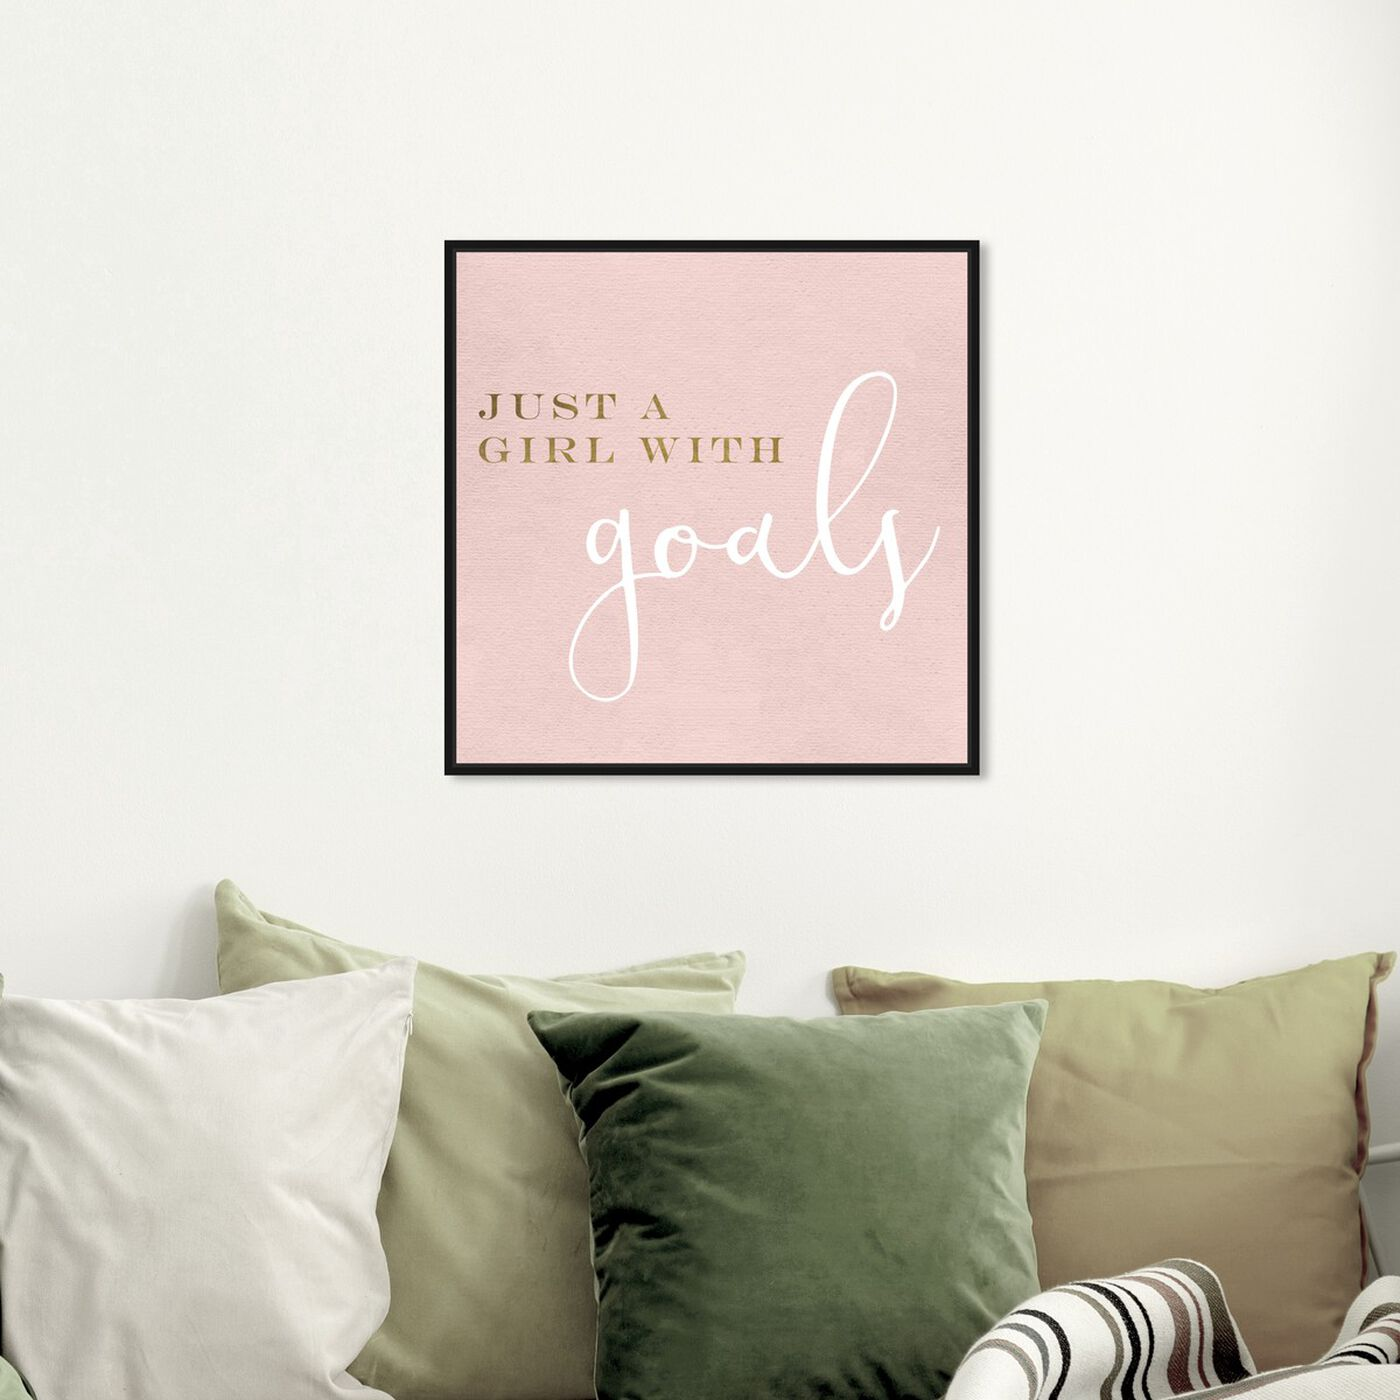 Hanging view of A Girl With Goals Blush featuring typography and quotes and empowered women quotes and sayings art.